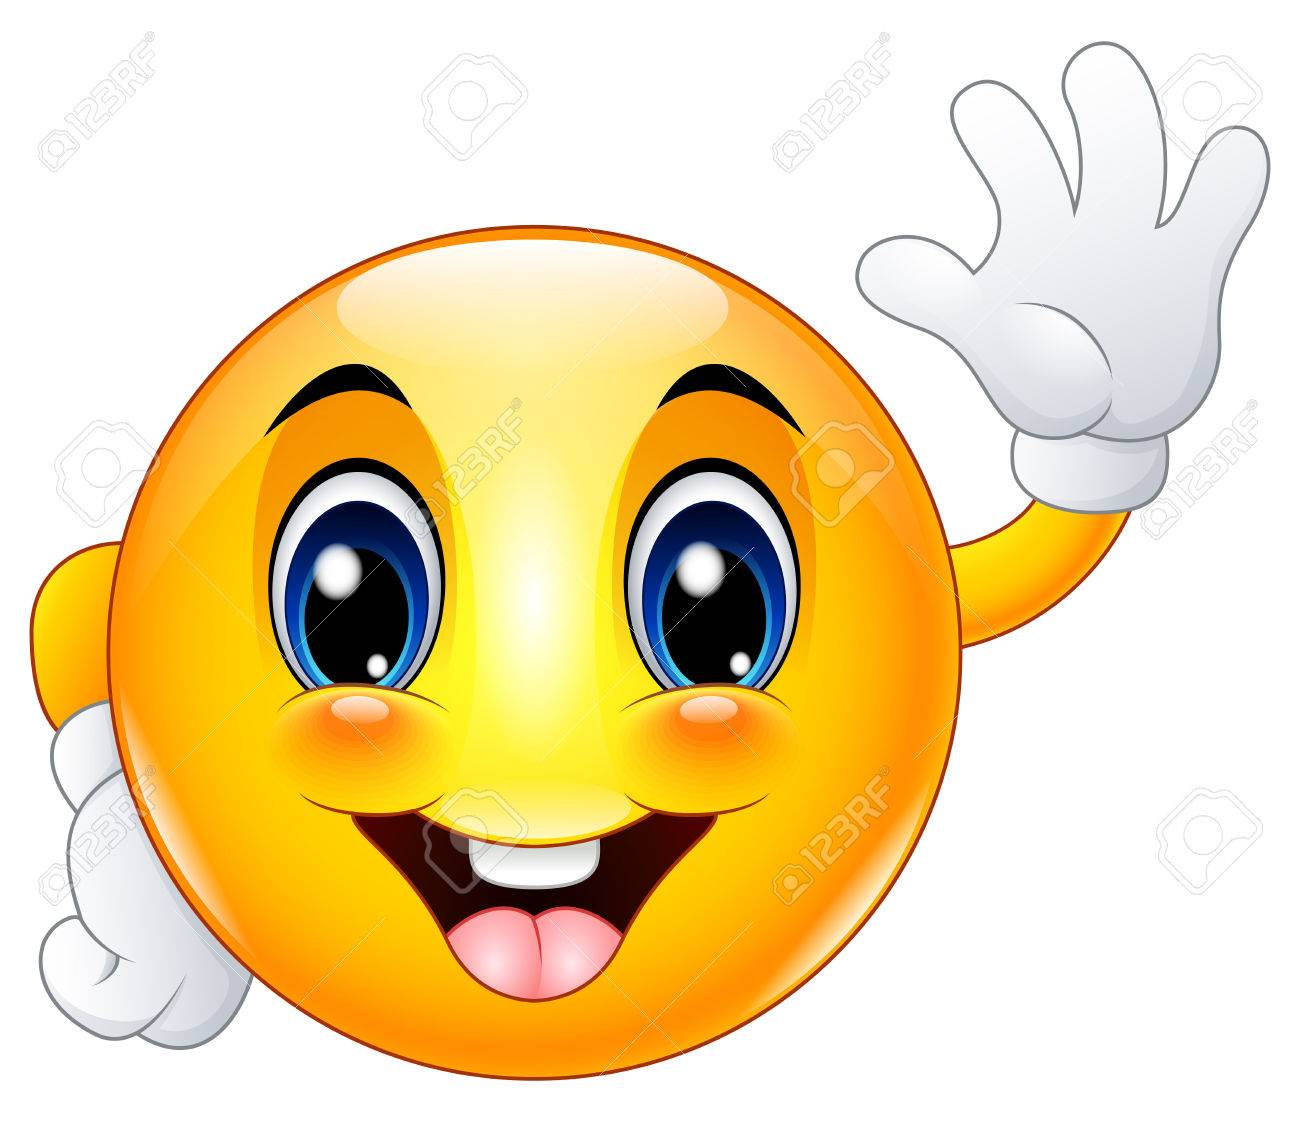 cartoon emoticon smiley face waving hello stock photo picture and